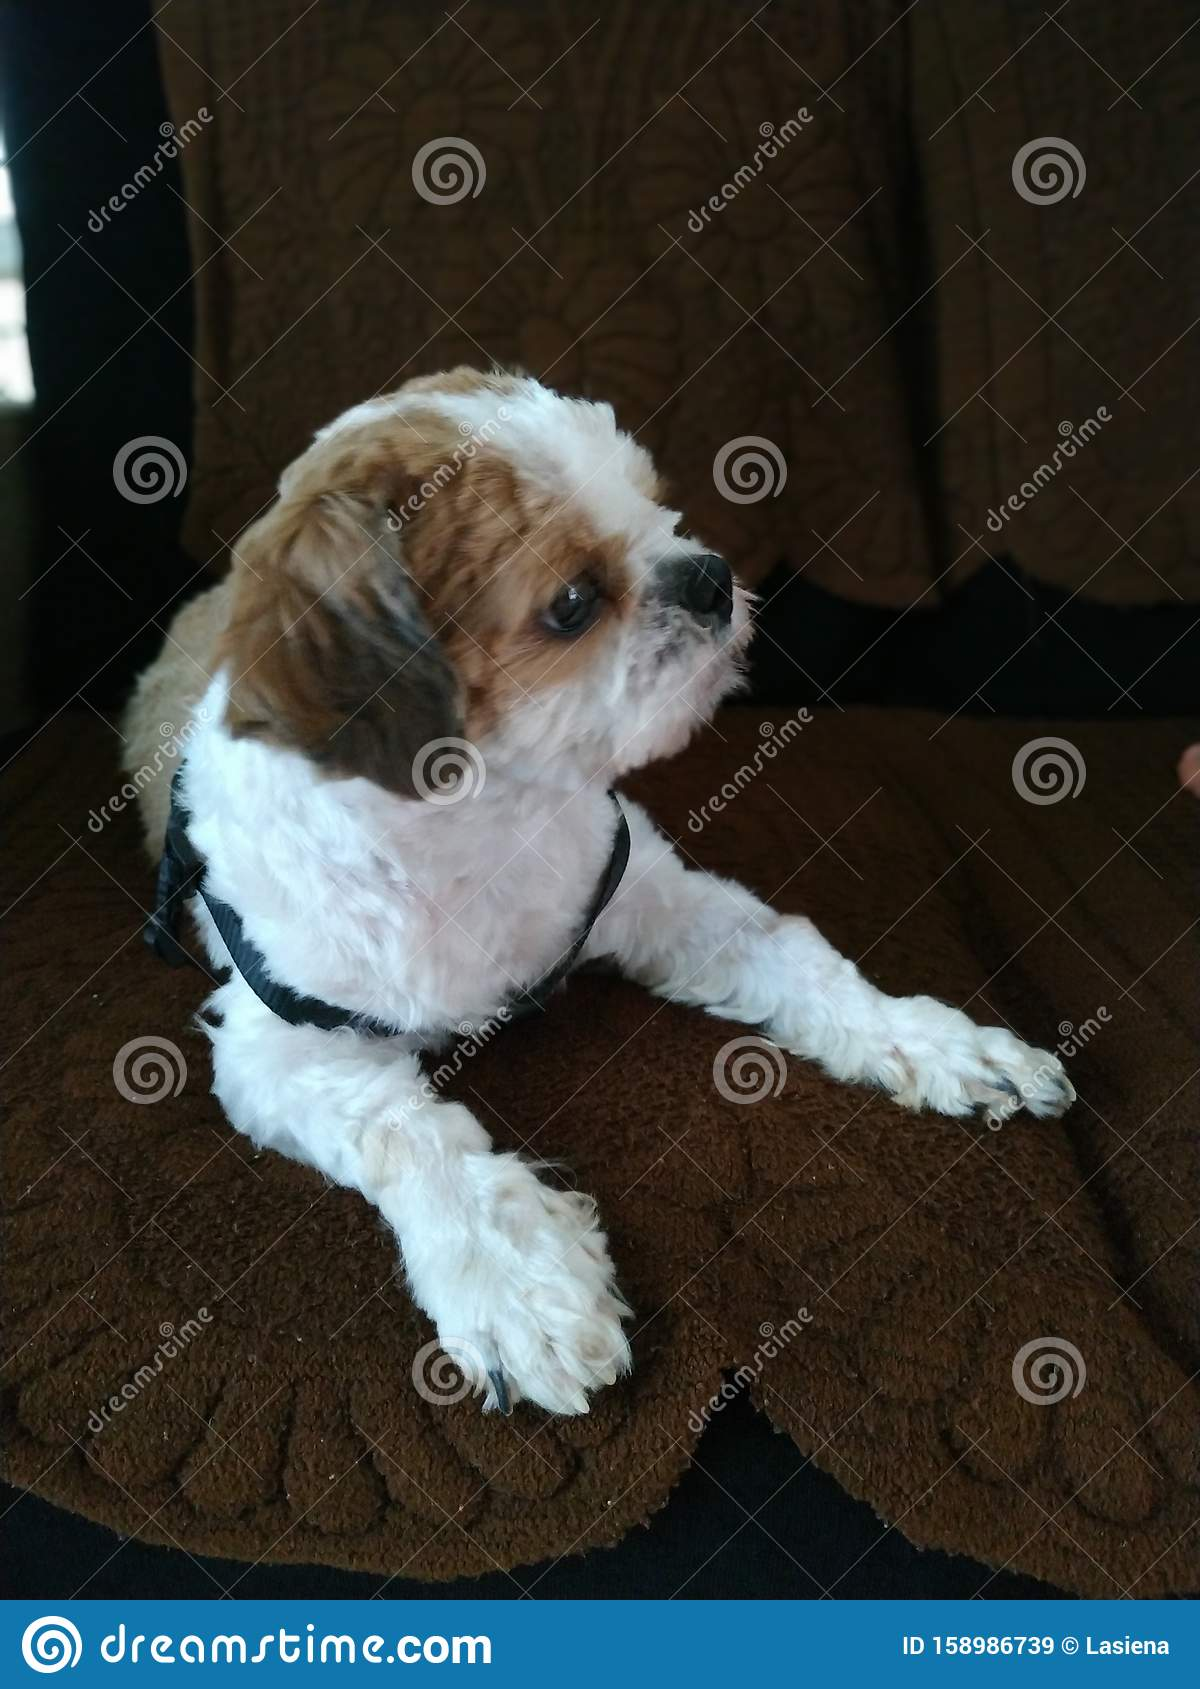 Shih Tzu Cute Puppy Dog White And Brown Stock Image Image Of Animal Cute 158986739